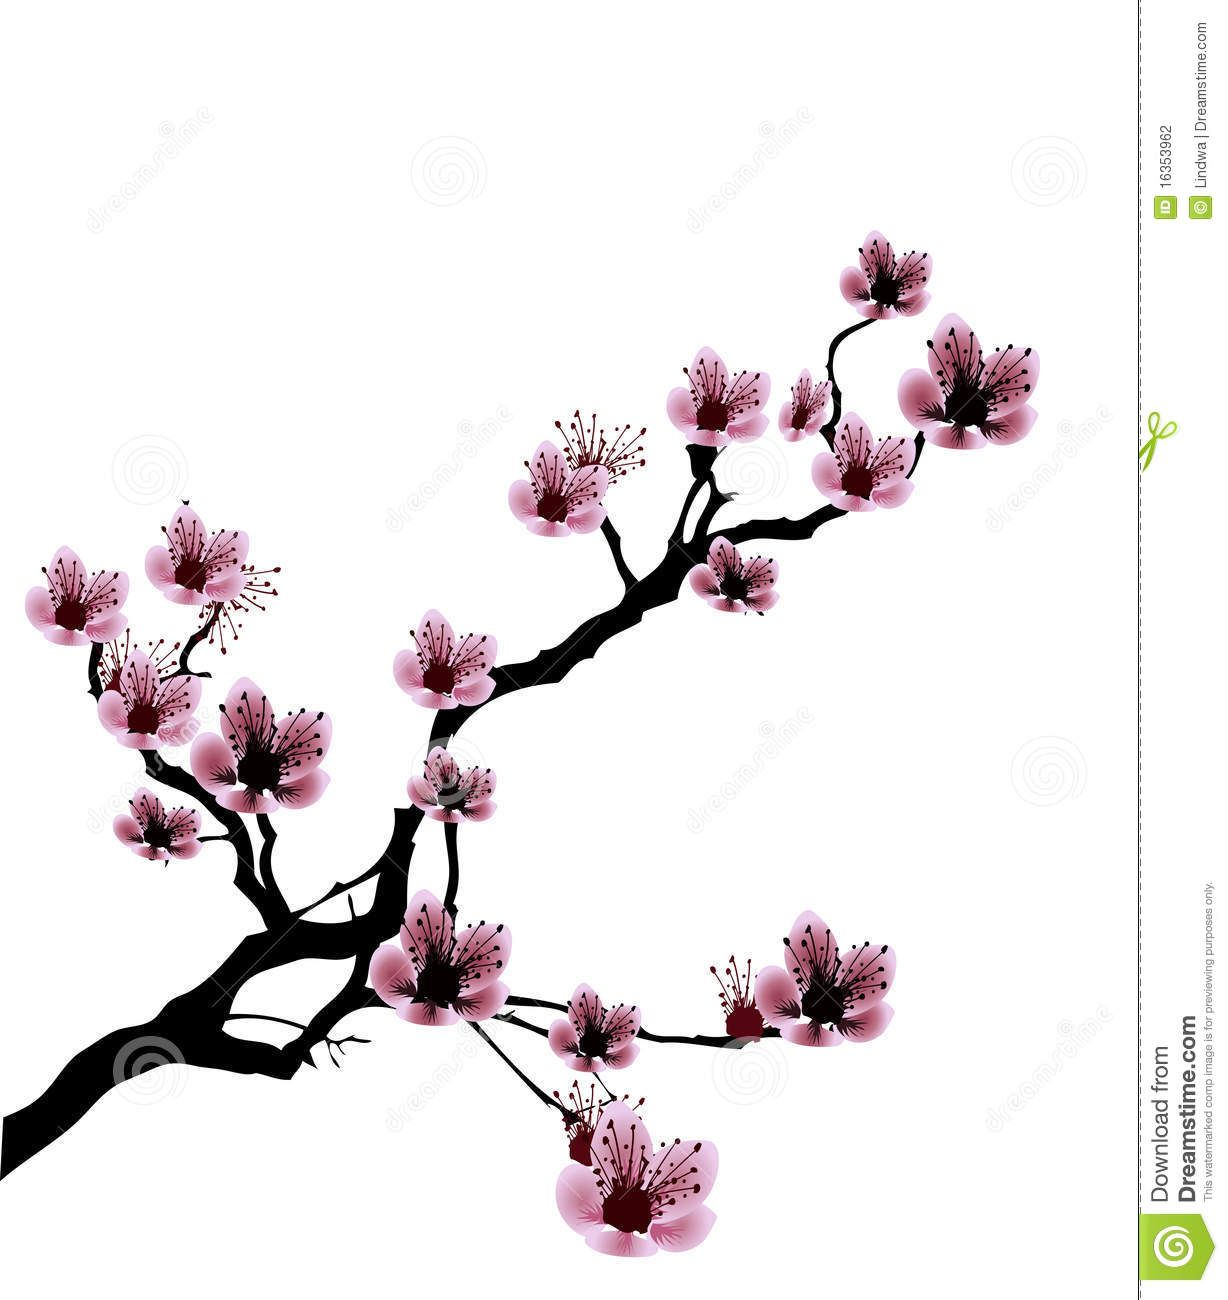 Black and White Cherry Blossom Drawings.